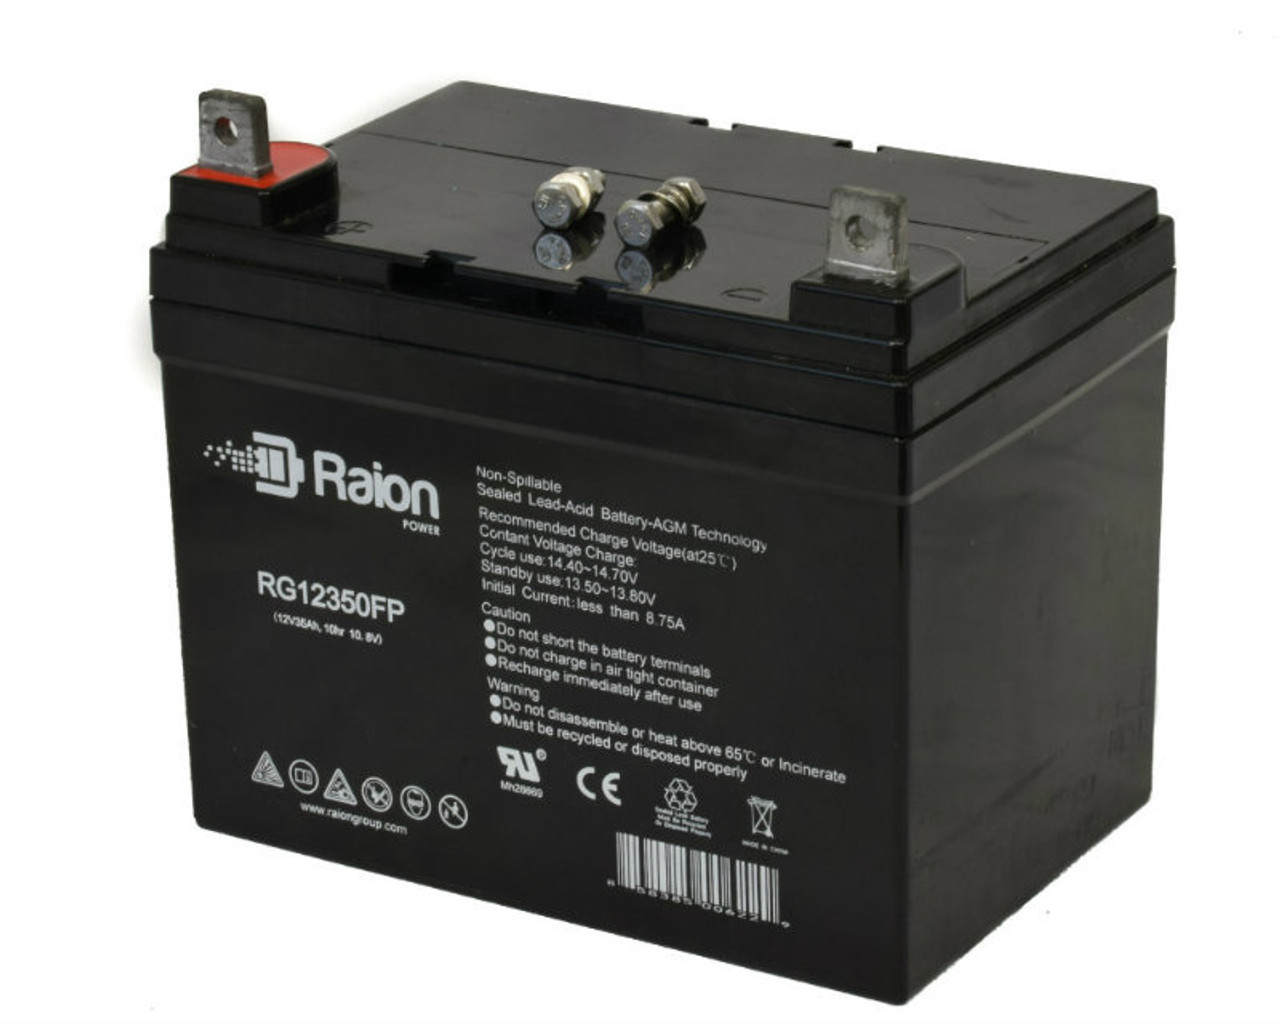 RG12350FP Sealed Lead Acid Battery Pack For Fortress Scooters 1700SP Mobility Scooter